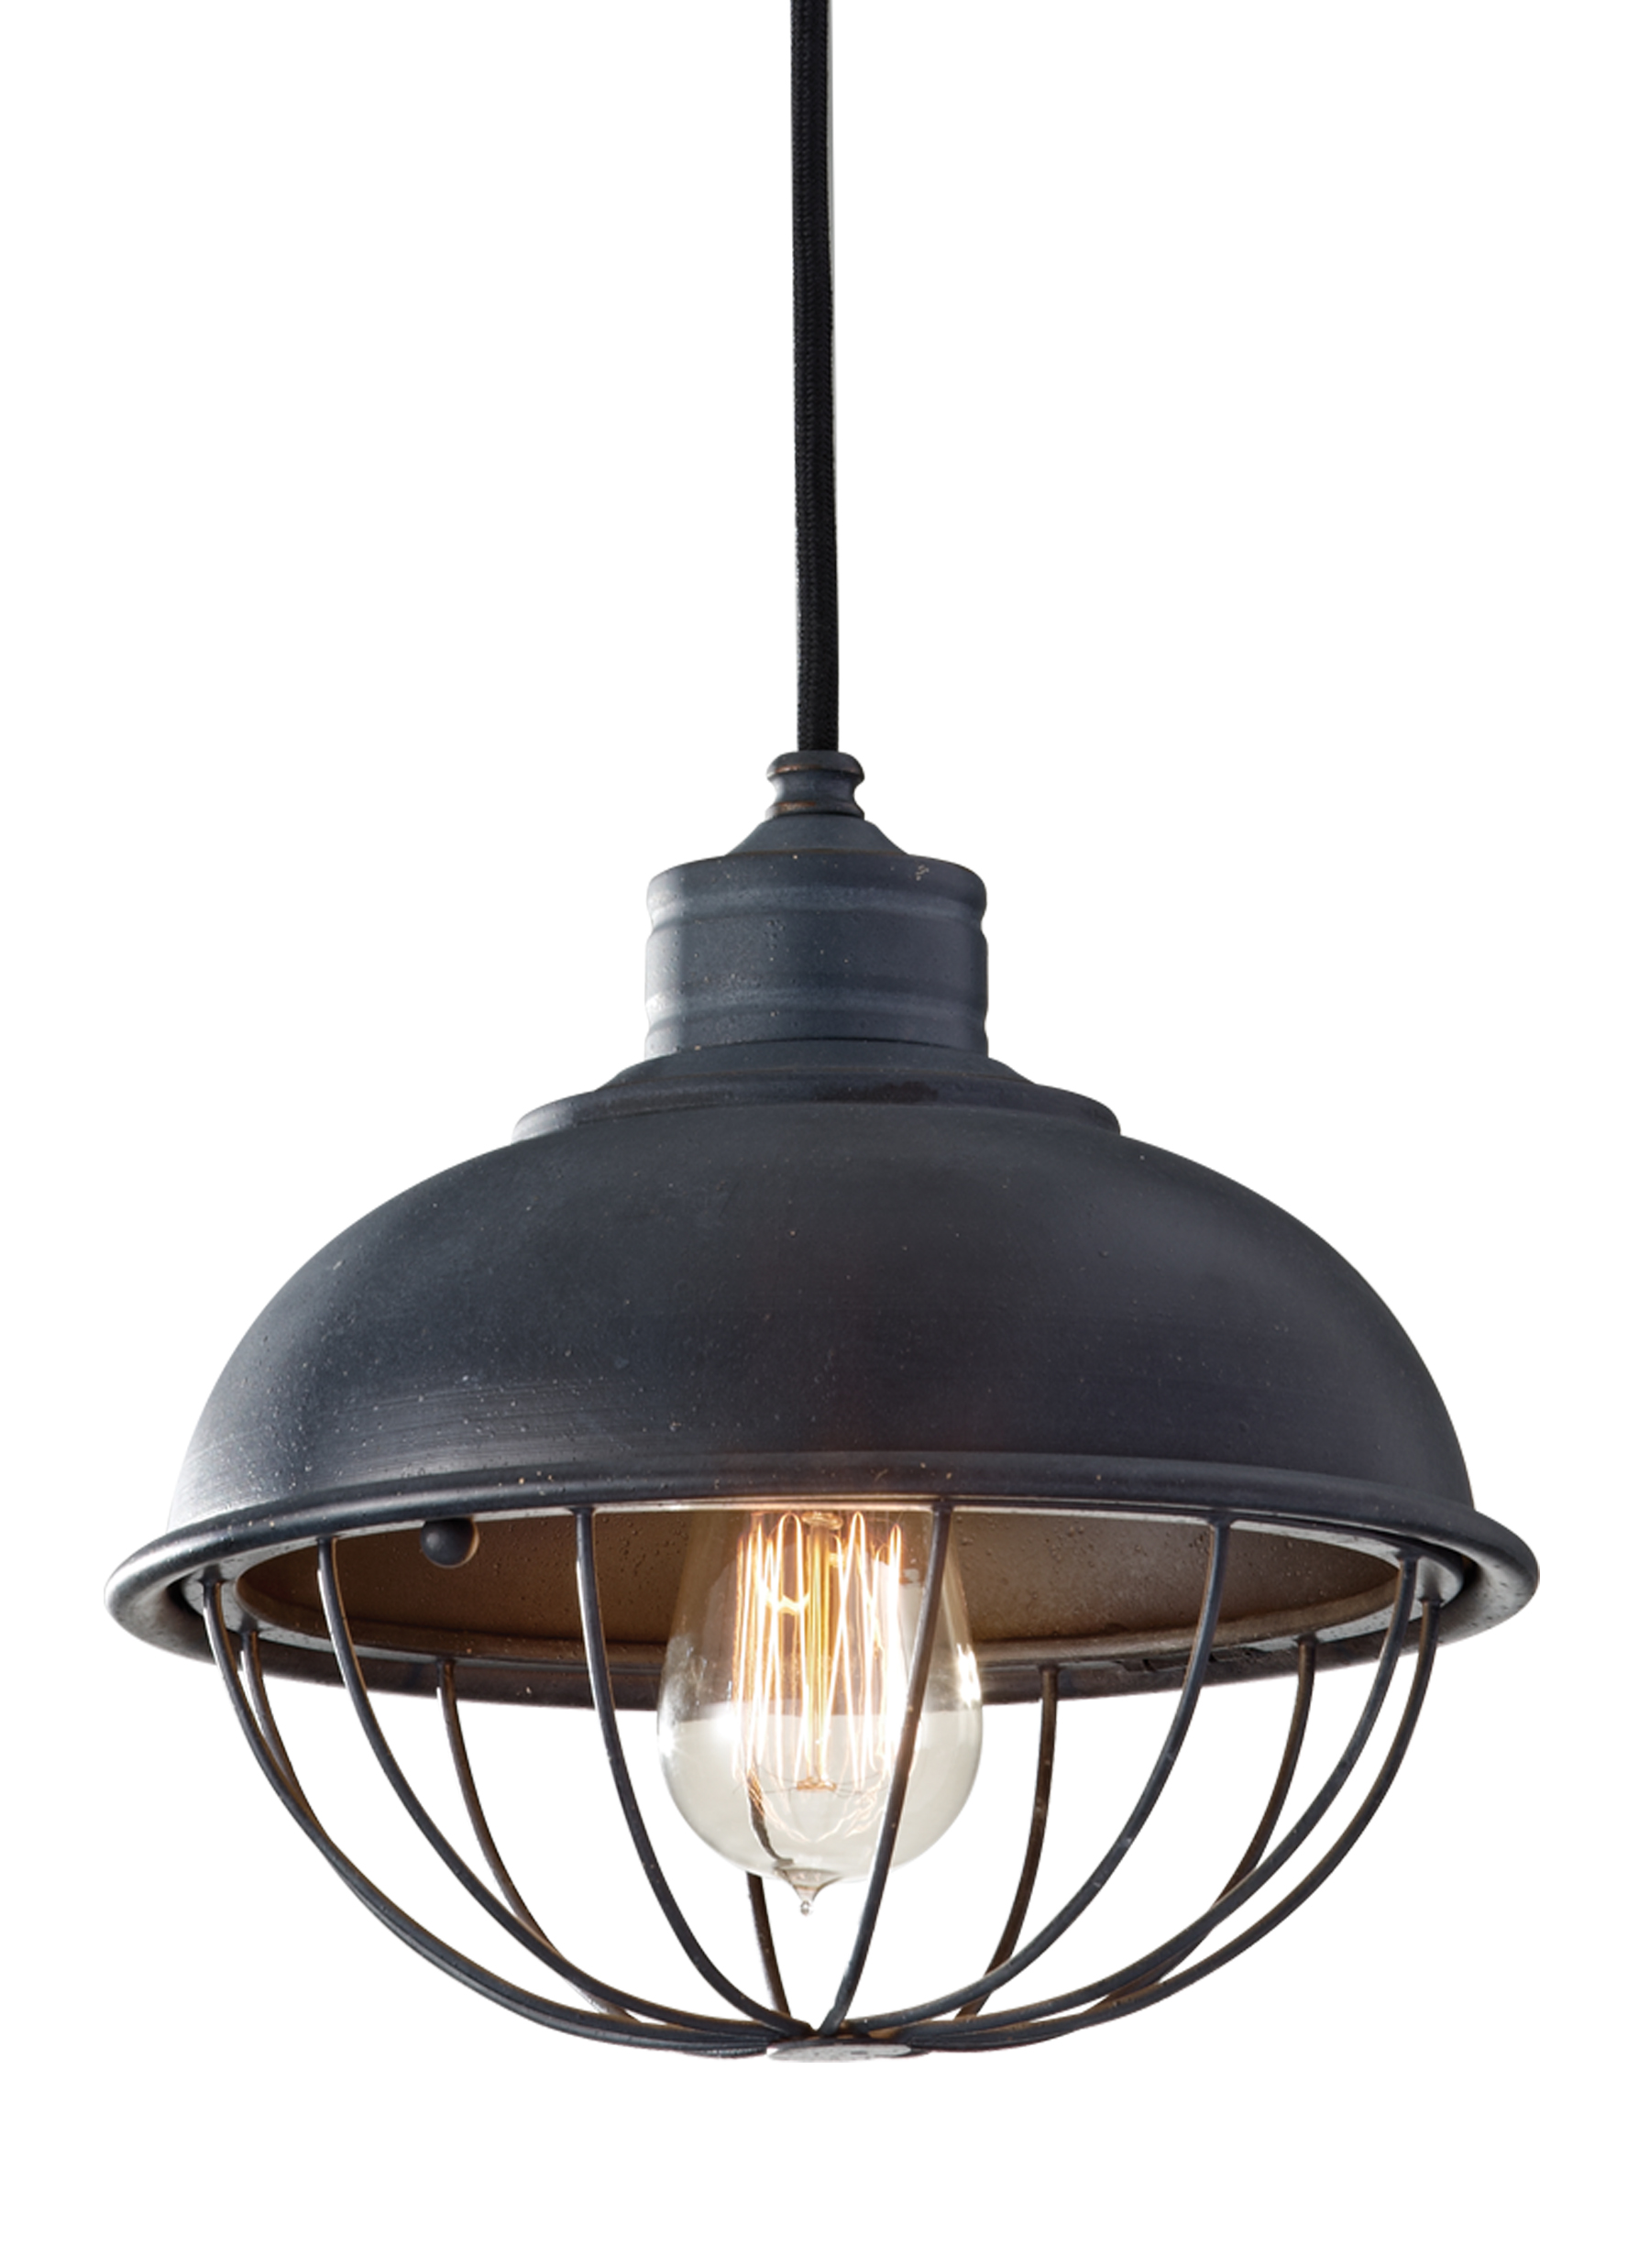 P1242AF,1-Light Pendant,Antique Forged Iron